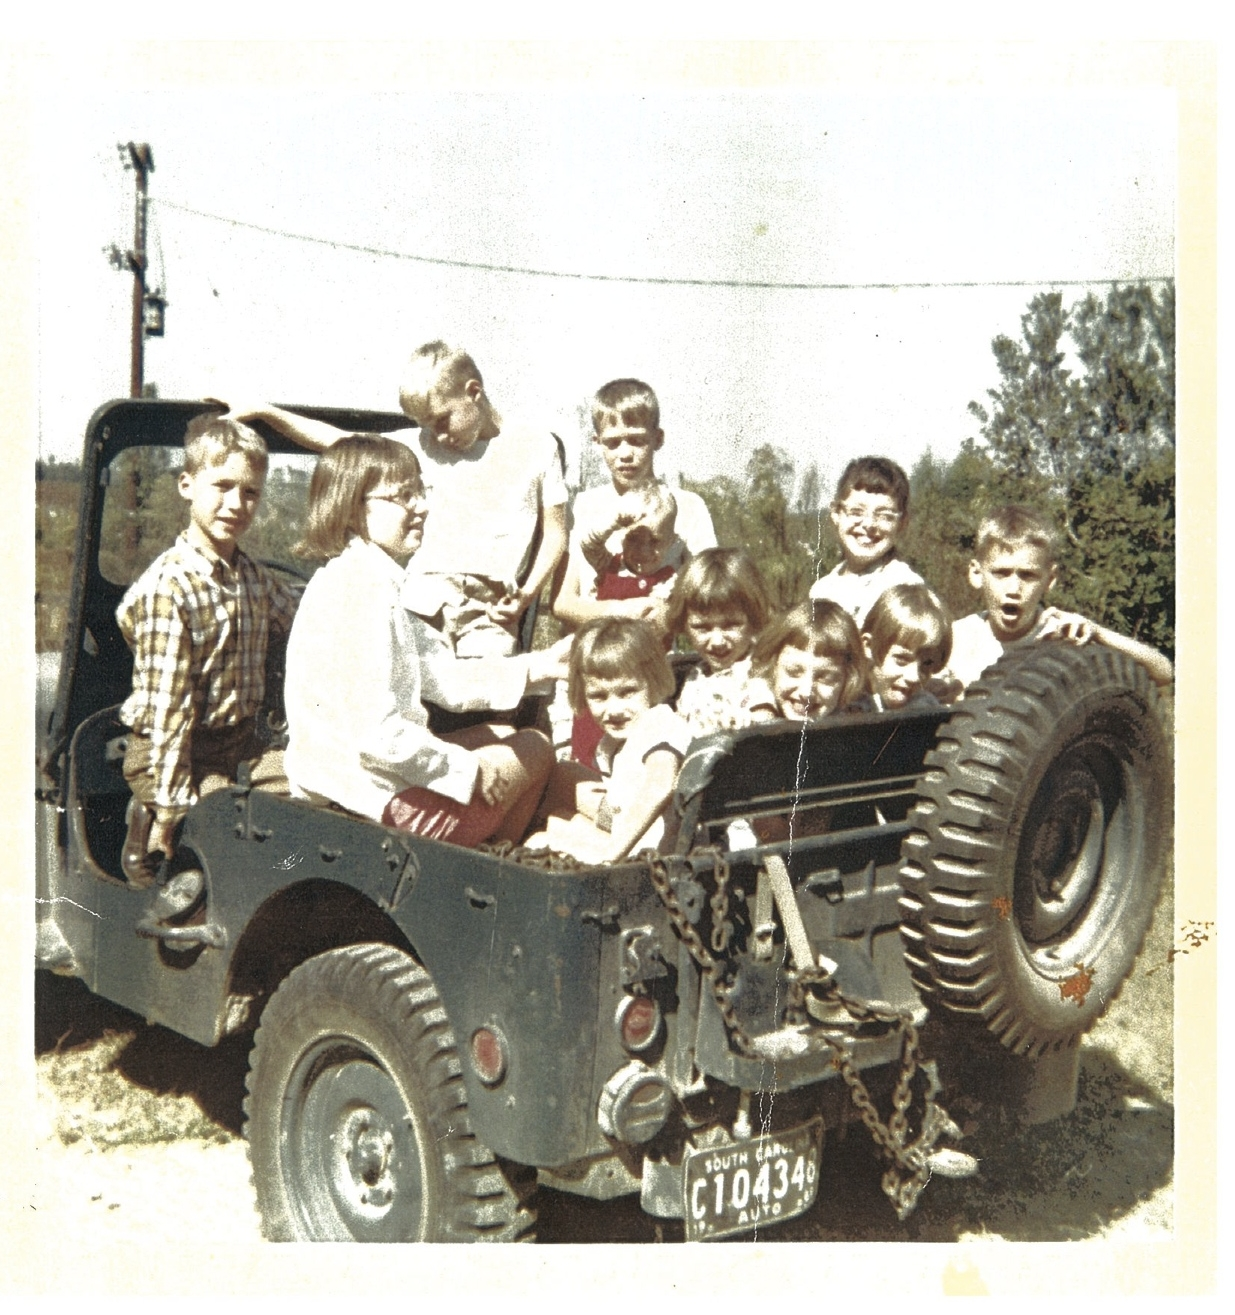 And here we are, all packed in for another farm adventure! Circa 1968  --just a guess.